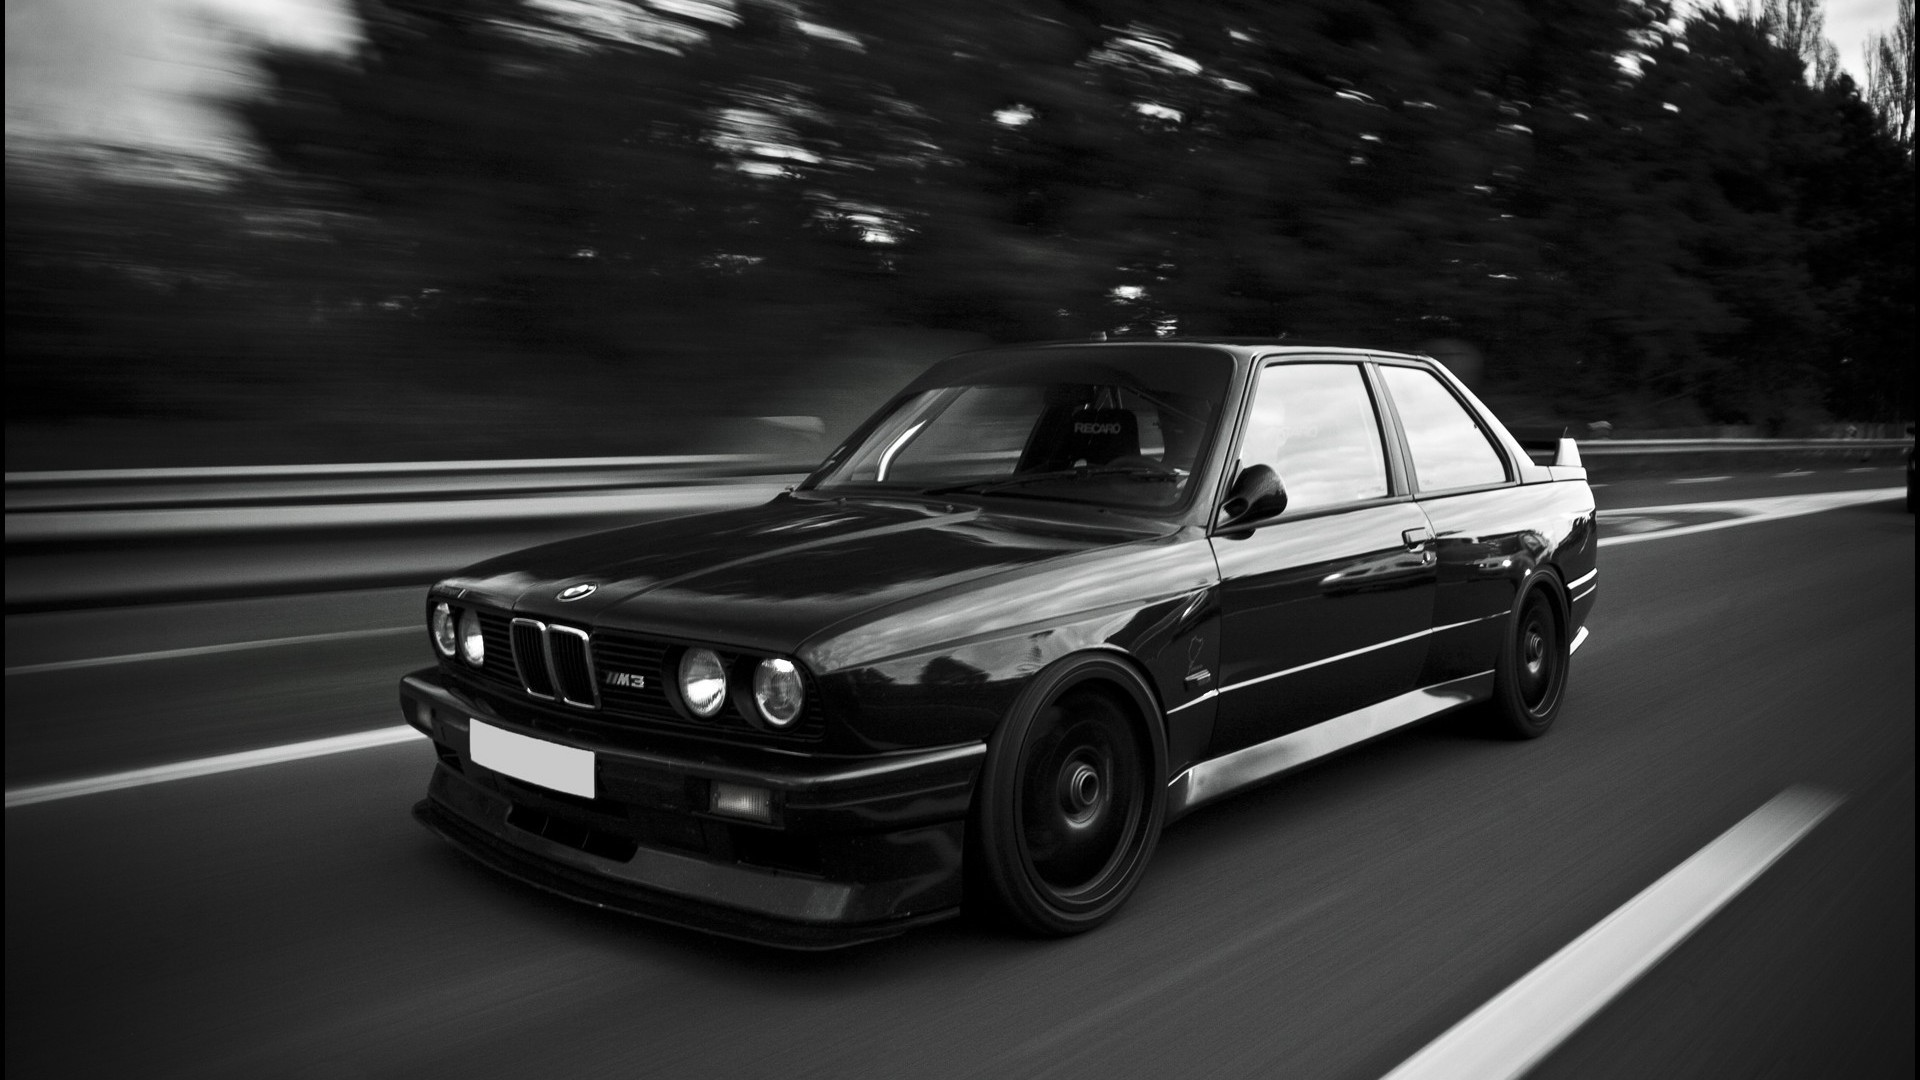 Bmw E30 M3 Black And White Wallpaper Allwallpaper In 10369 Pc En